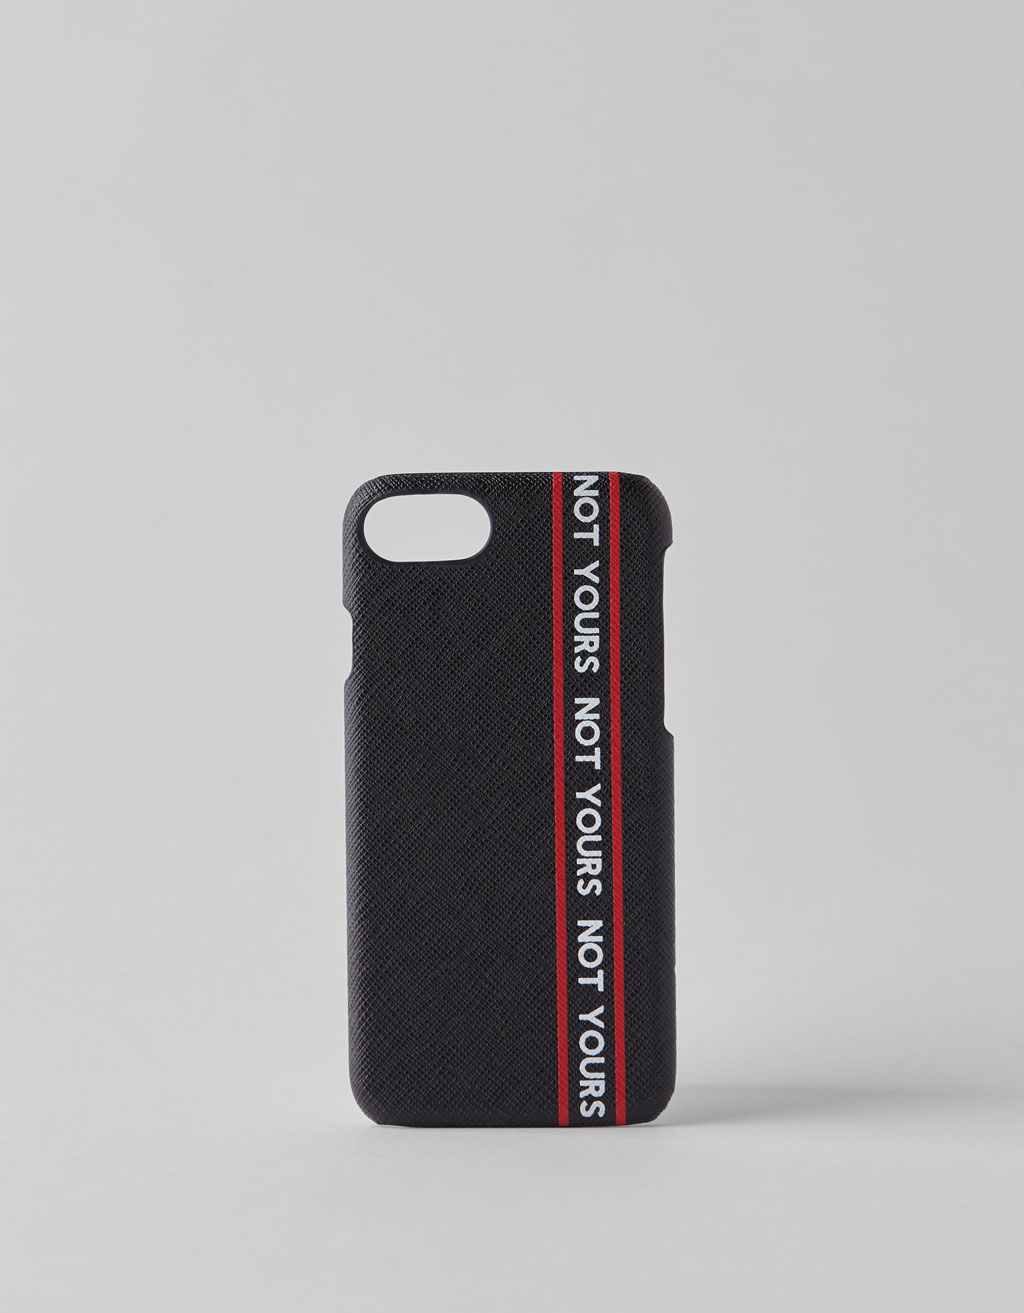 Carcassa estampada iPhone 6 / 7 / 8